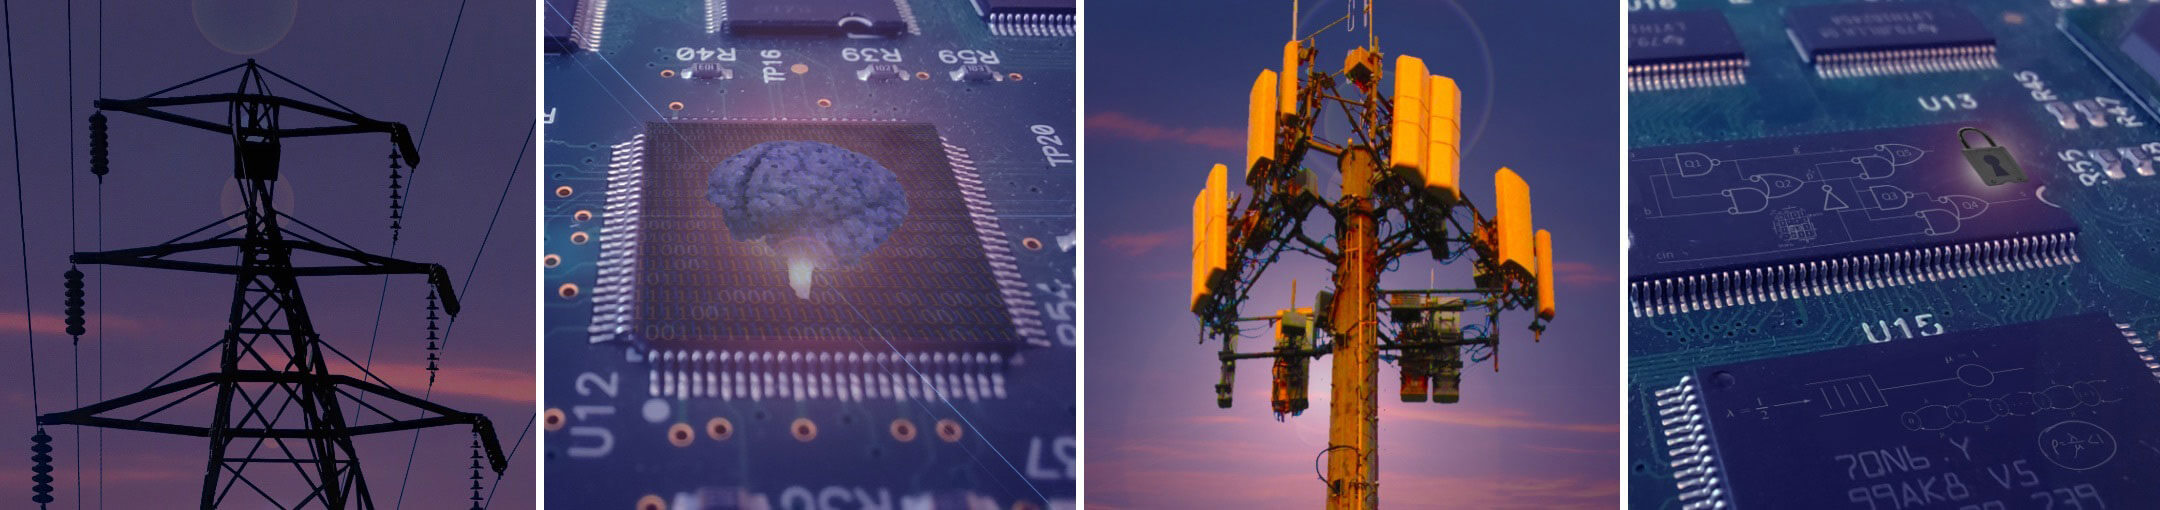 A collage of images representing electrical and computer engineering, including circuitboards, power lines, and antennas.